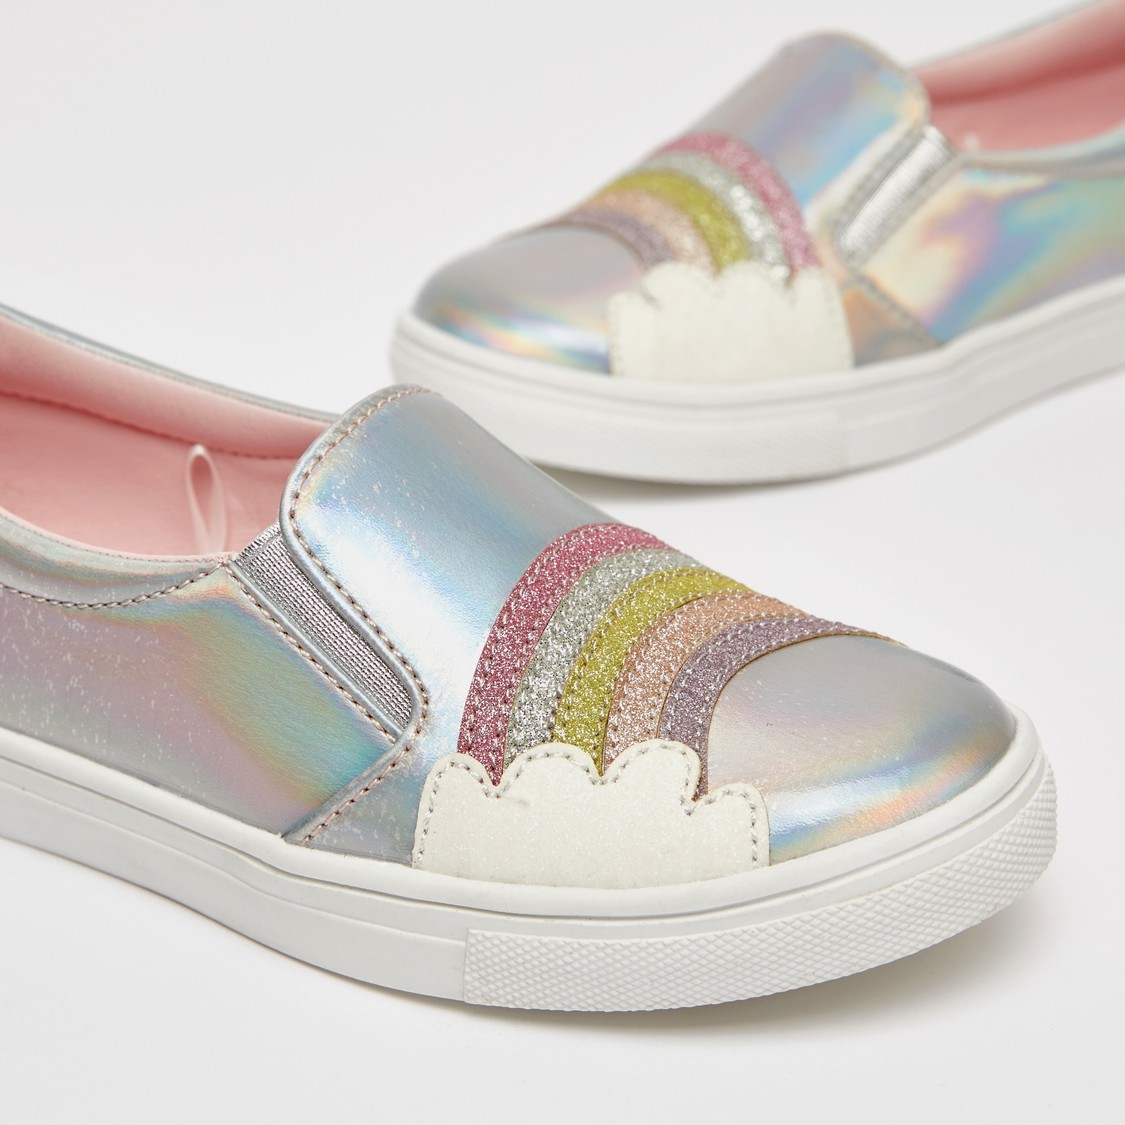 Textured Slip-On Shoes with Glitter Detail and Rainbow Accent